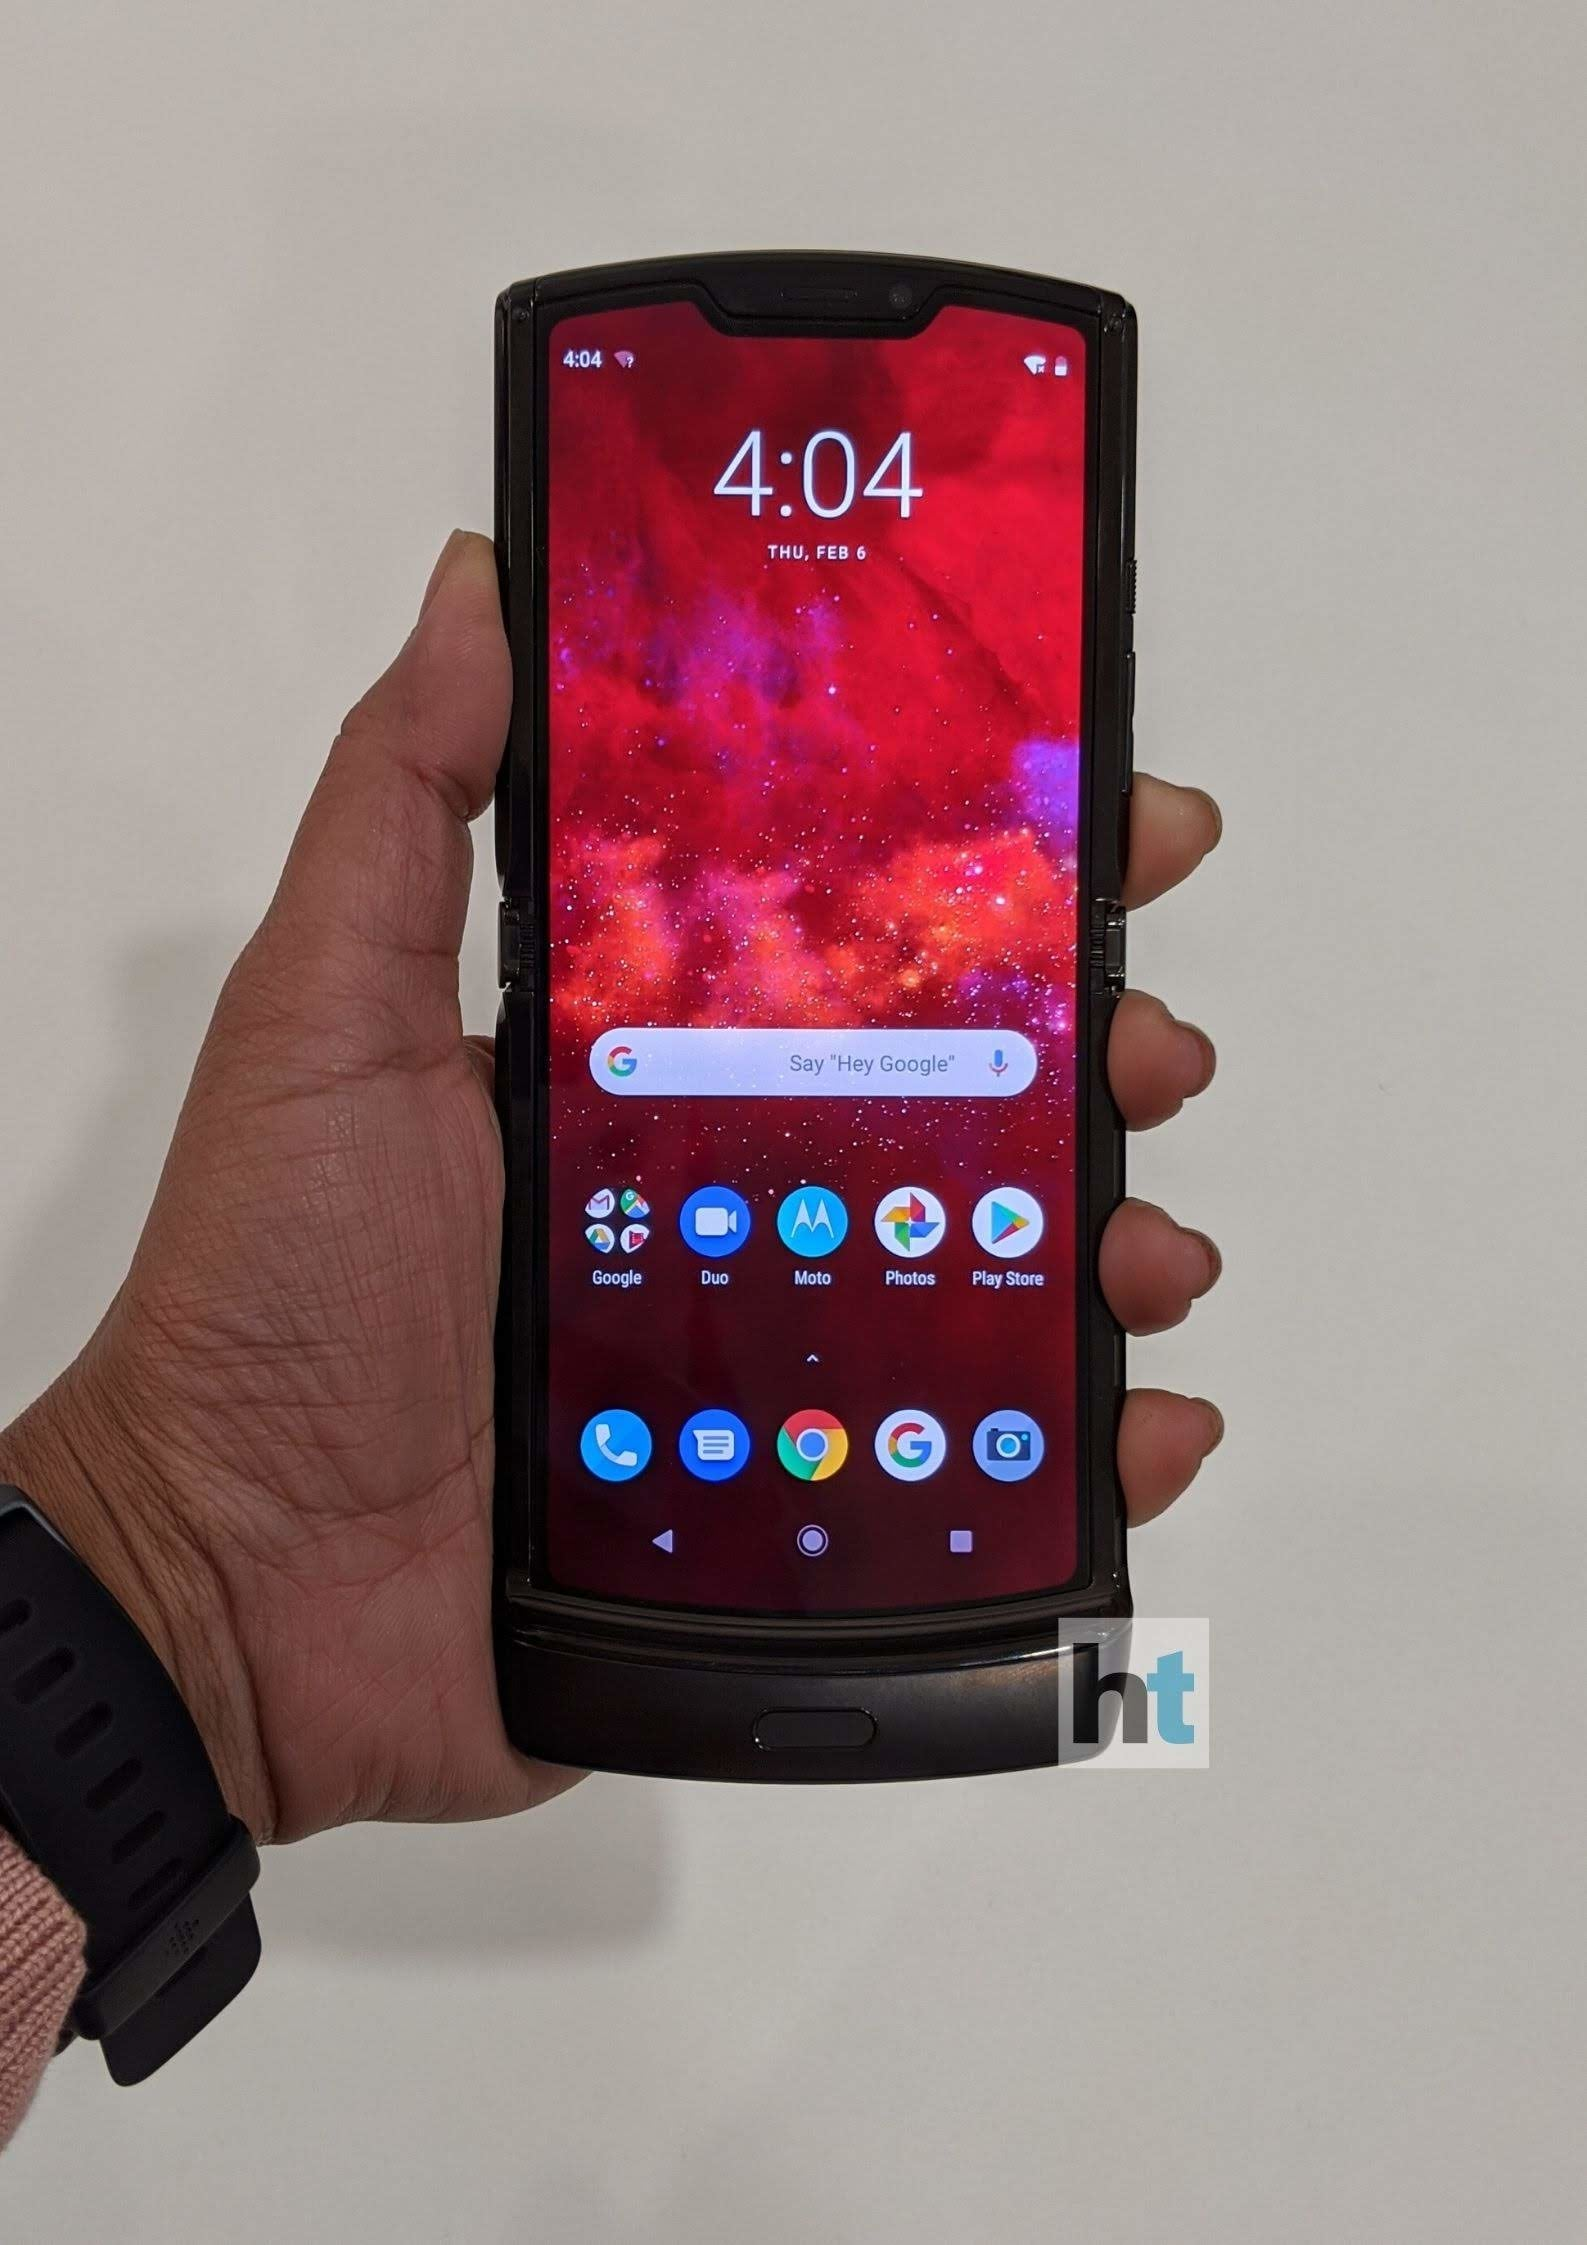 There's a 2.7-inch cover screen when you un-flip (close) the phone.